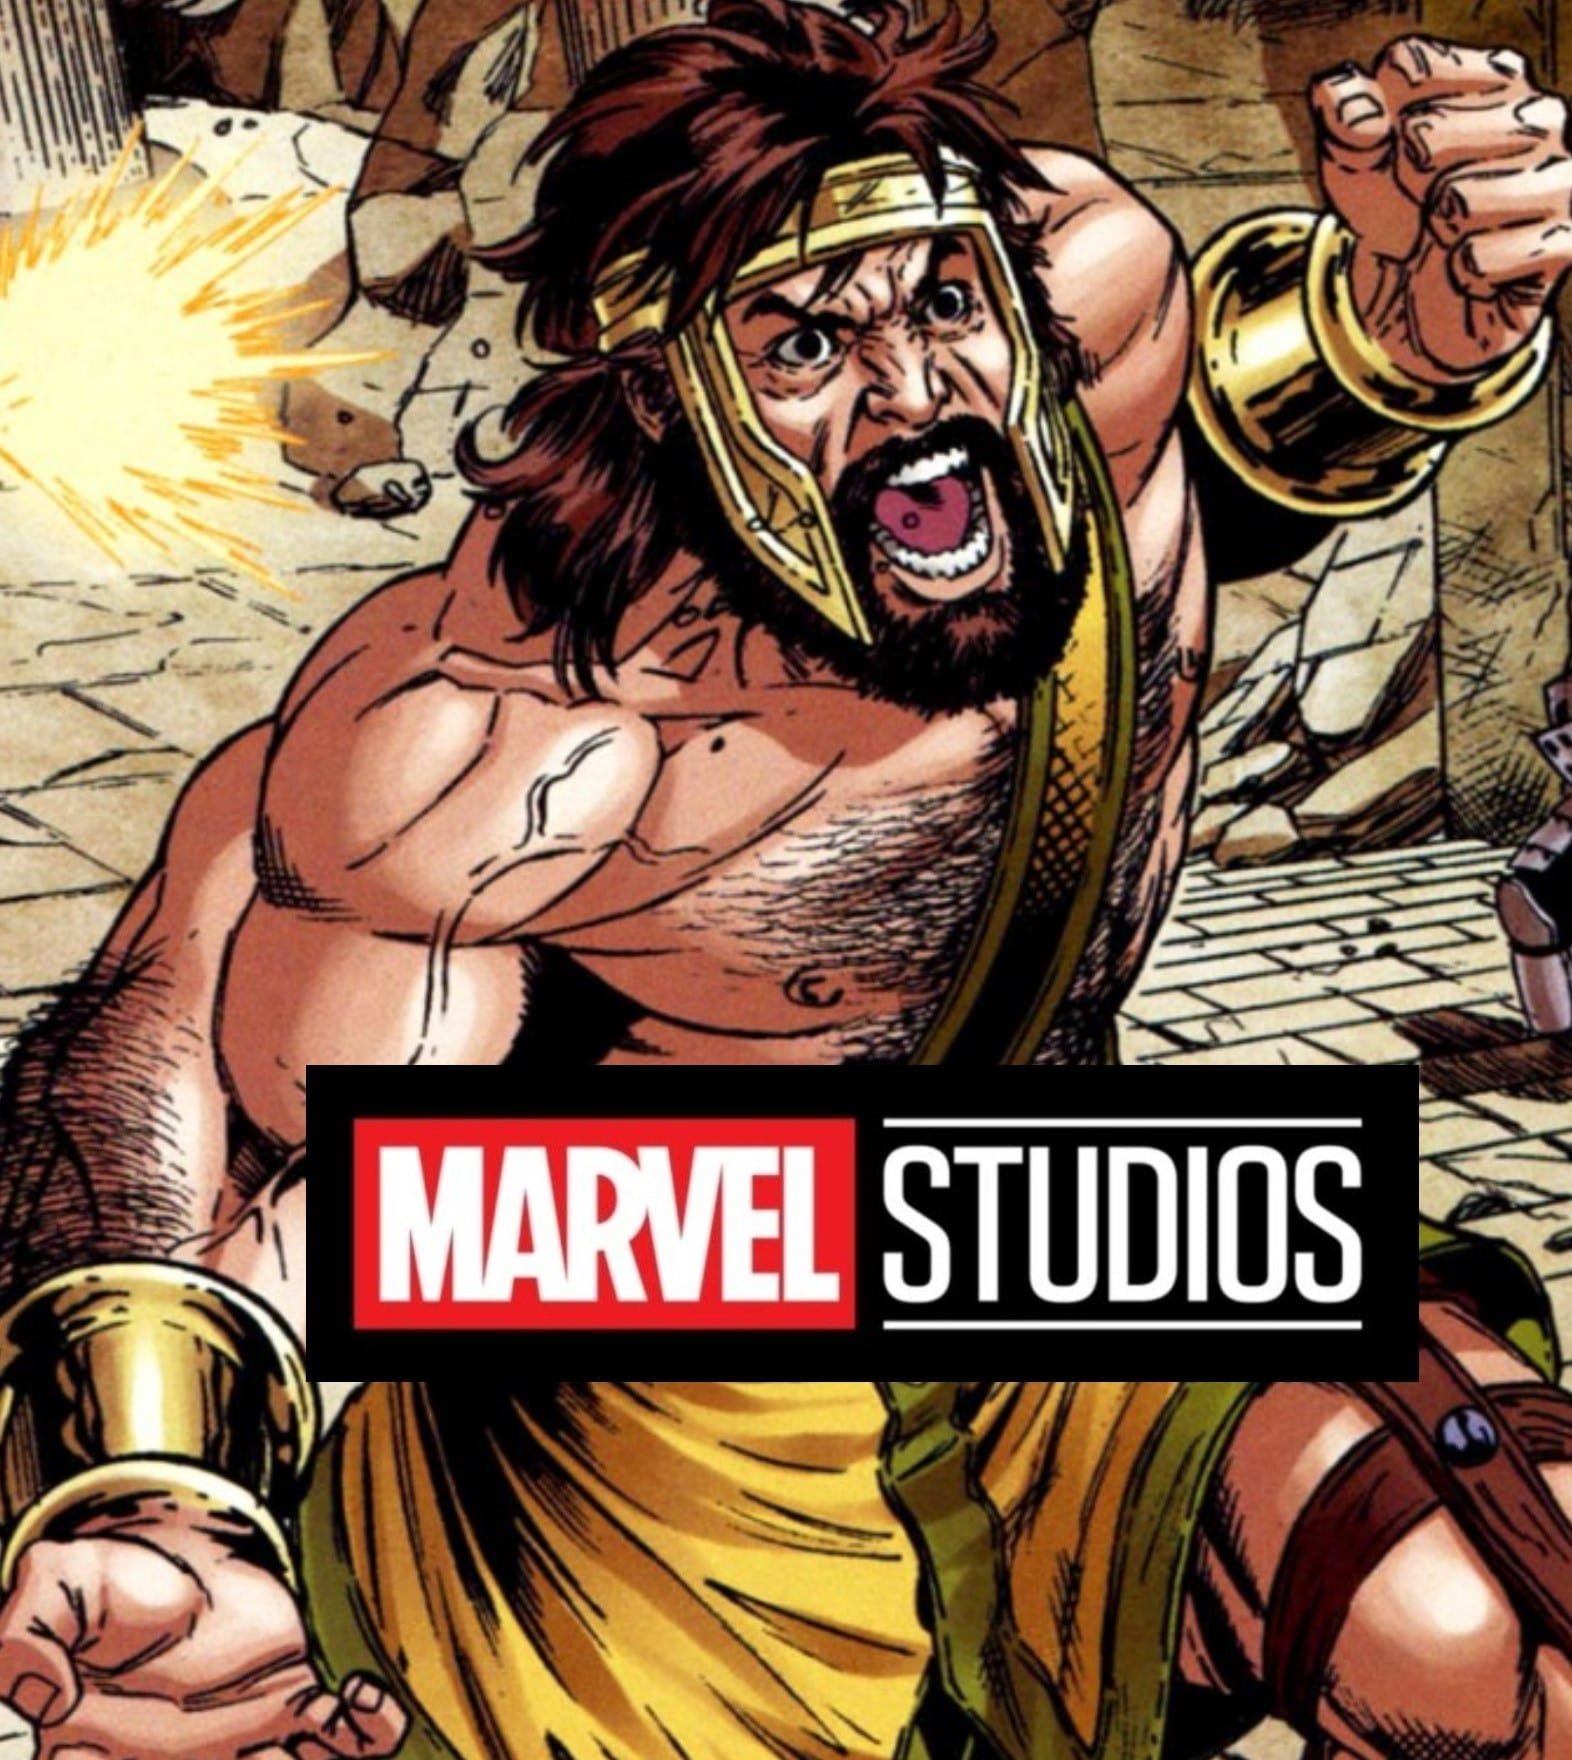 Rumor: Hercules will soon debut in the MCU